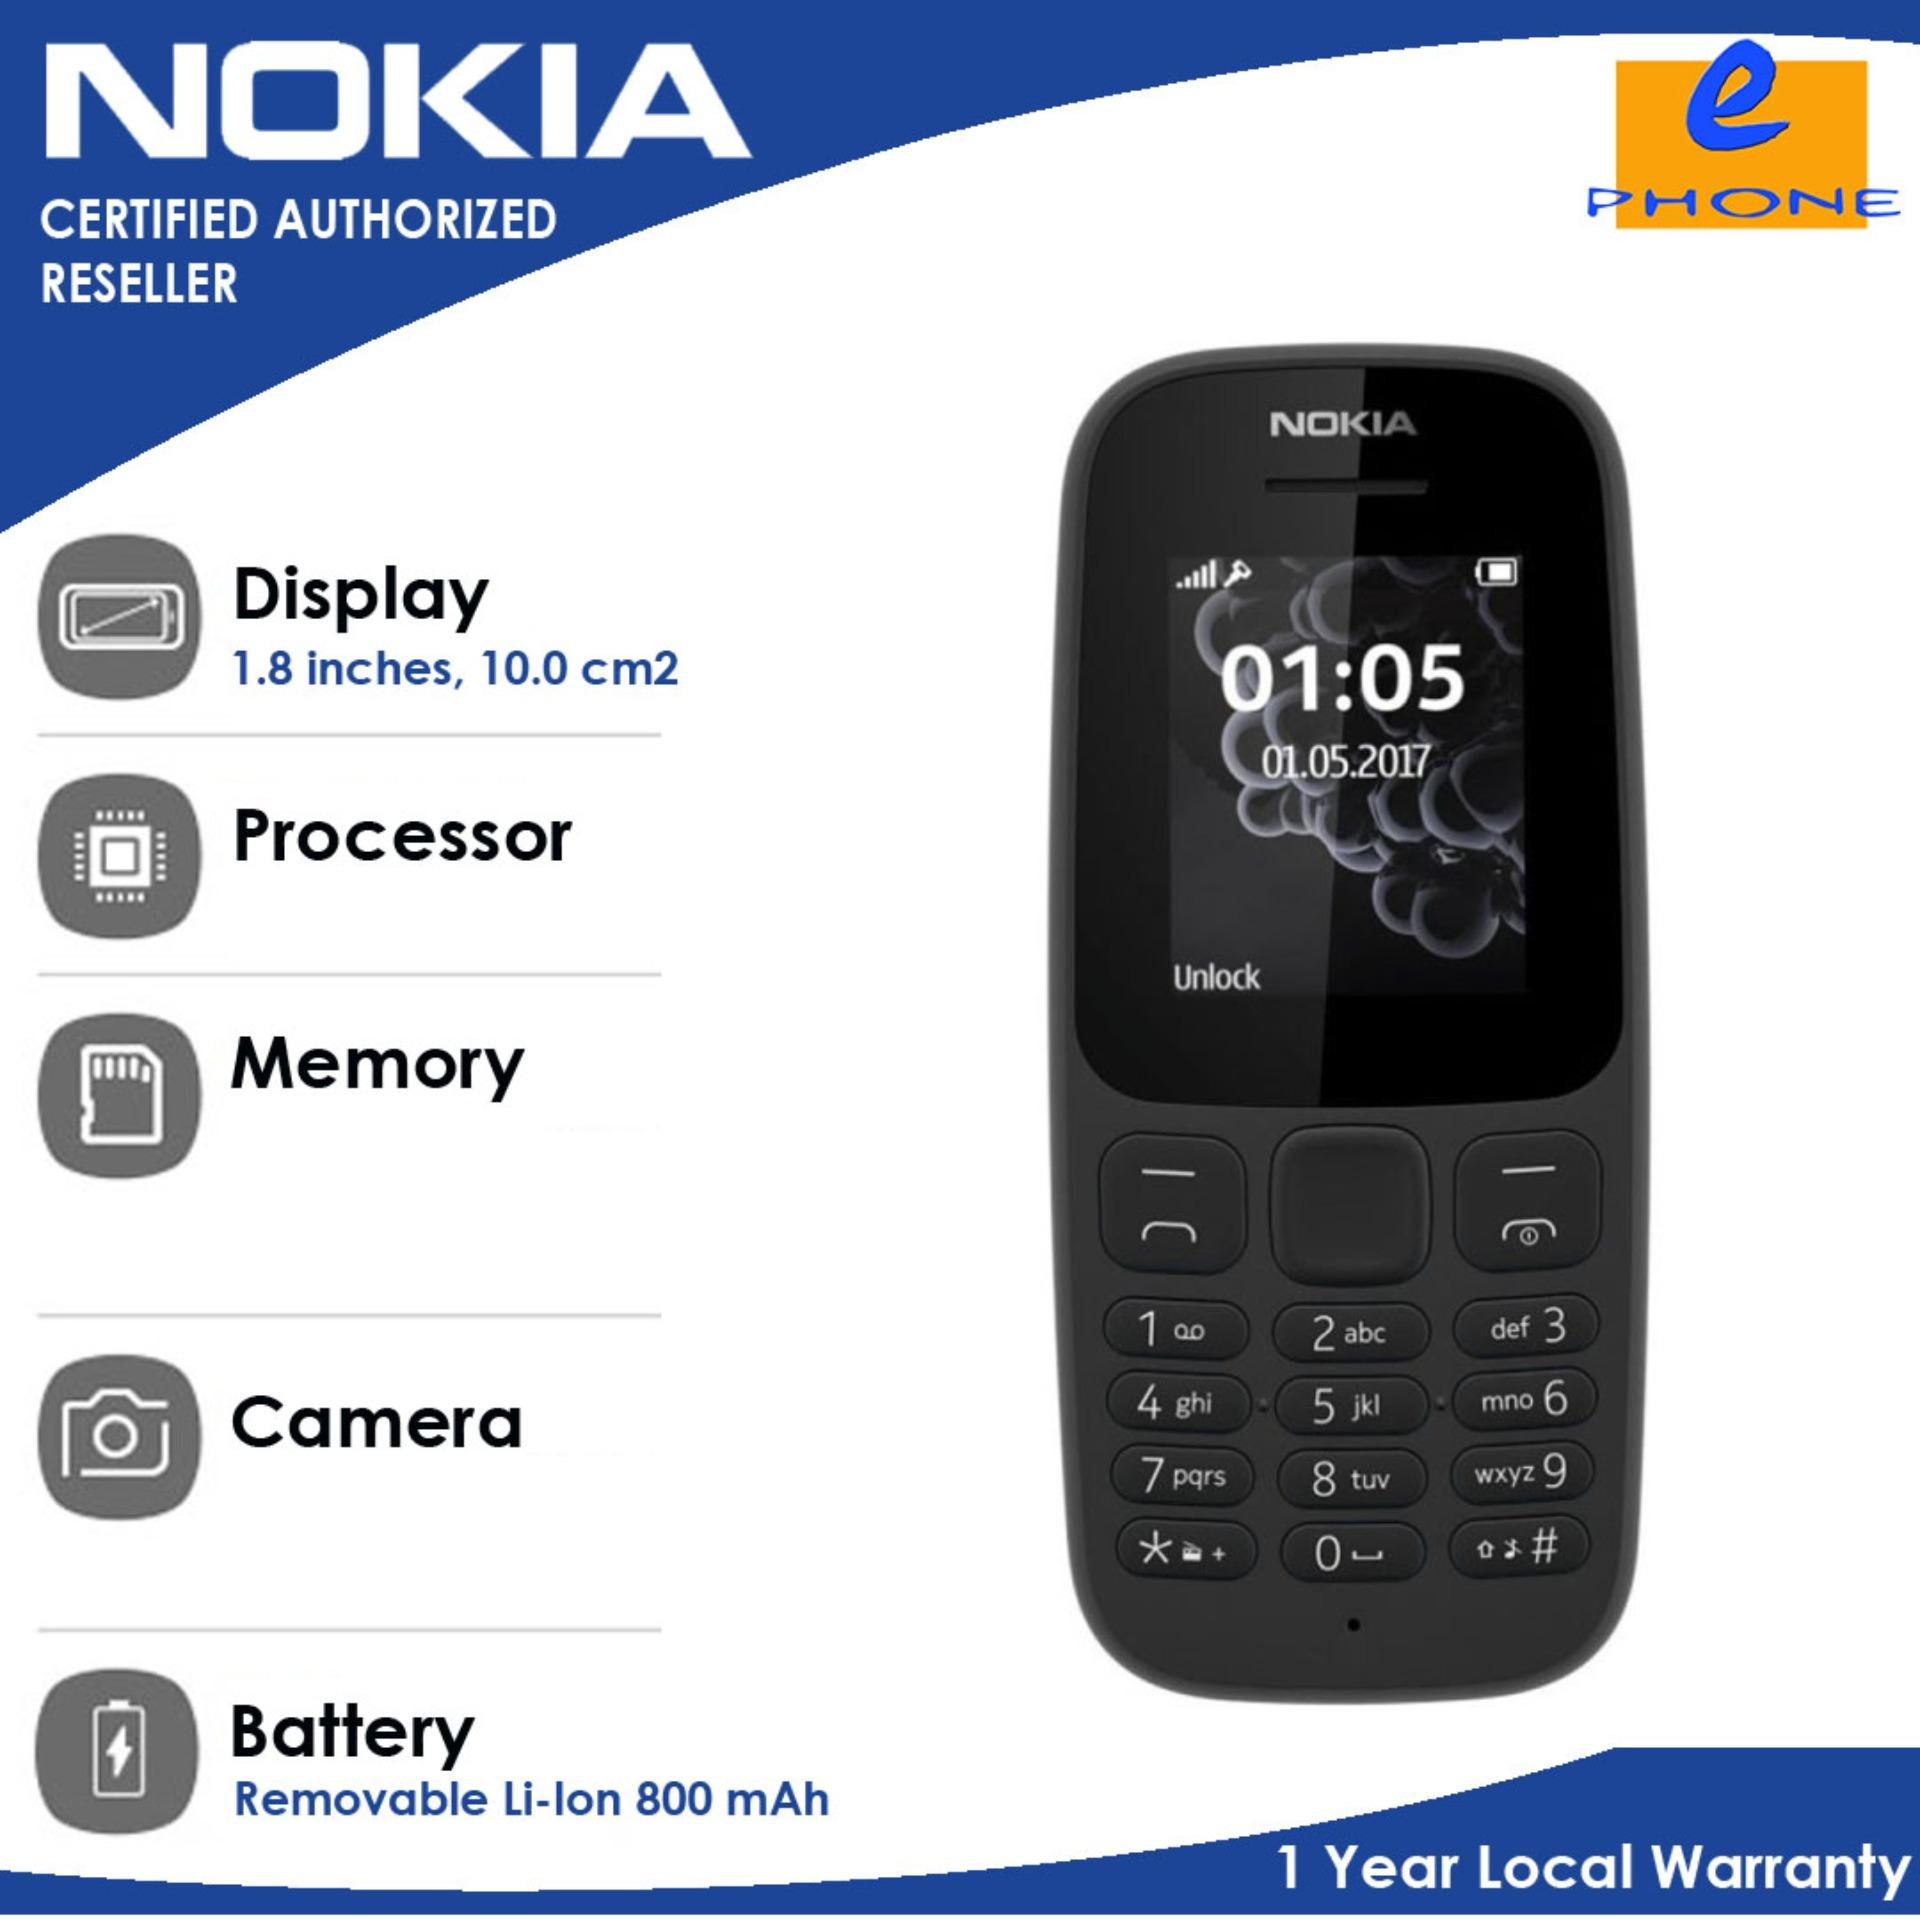 Nokia 105 2017 1.8 inches 4MBRAM 800 mah with 1 Year Local Warranty Authentic/Original Dual Sim TFT 120x160 Micro USB 2.0 (Black)